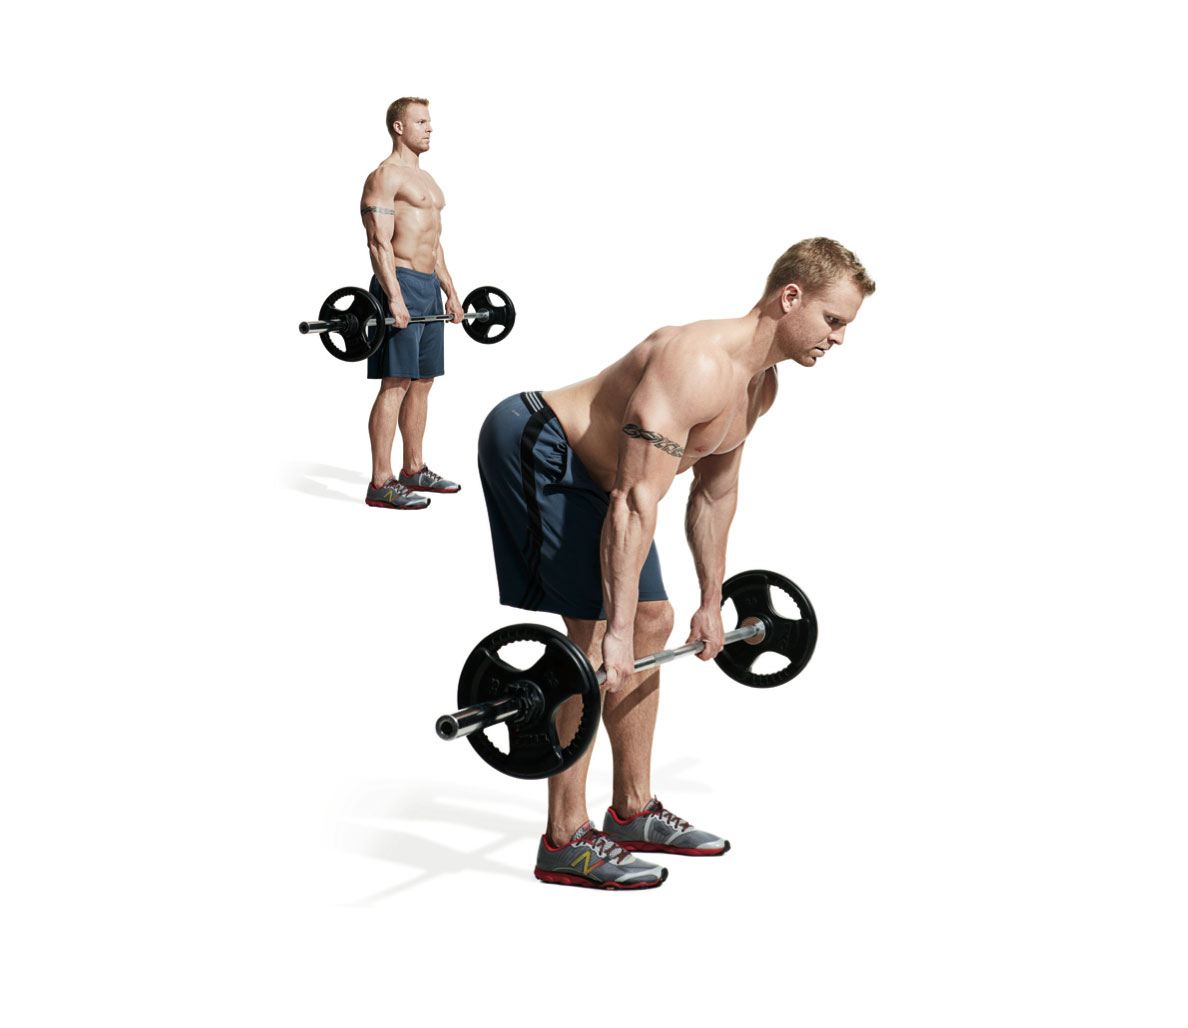 Full body workout with barbell exercises for muscle growth